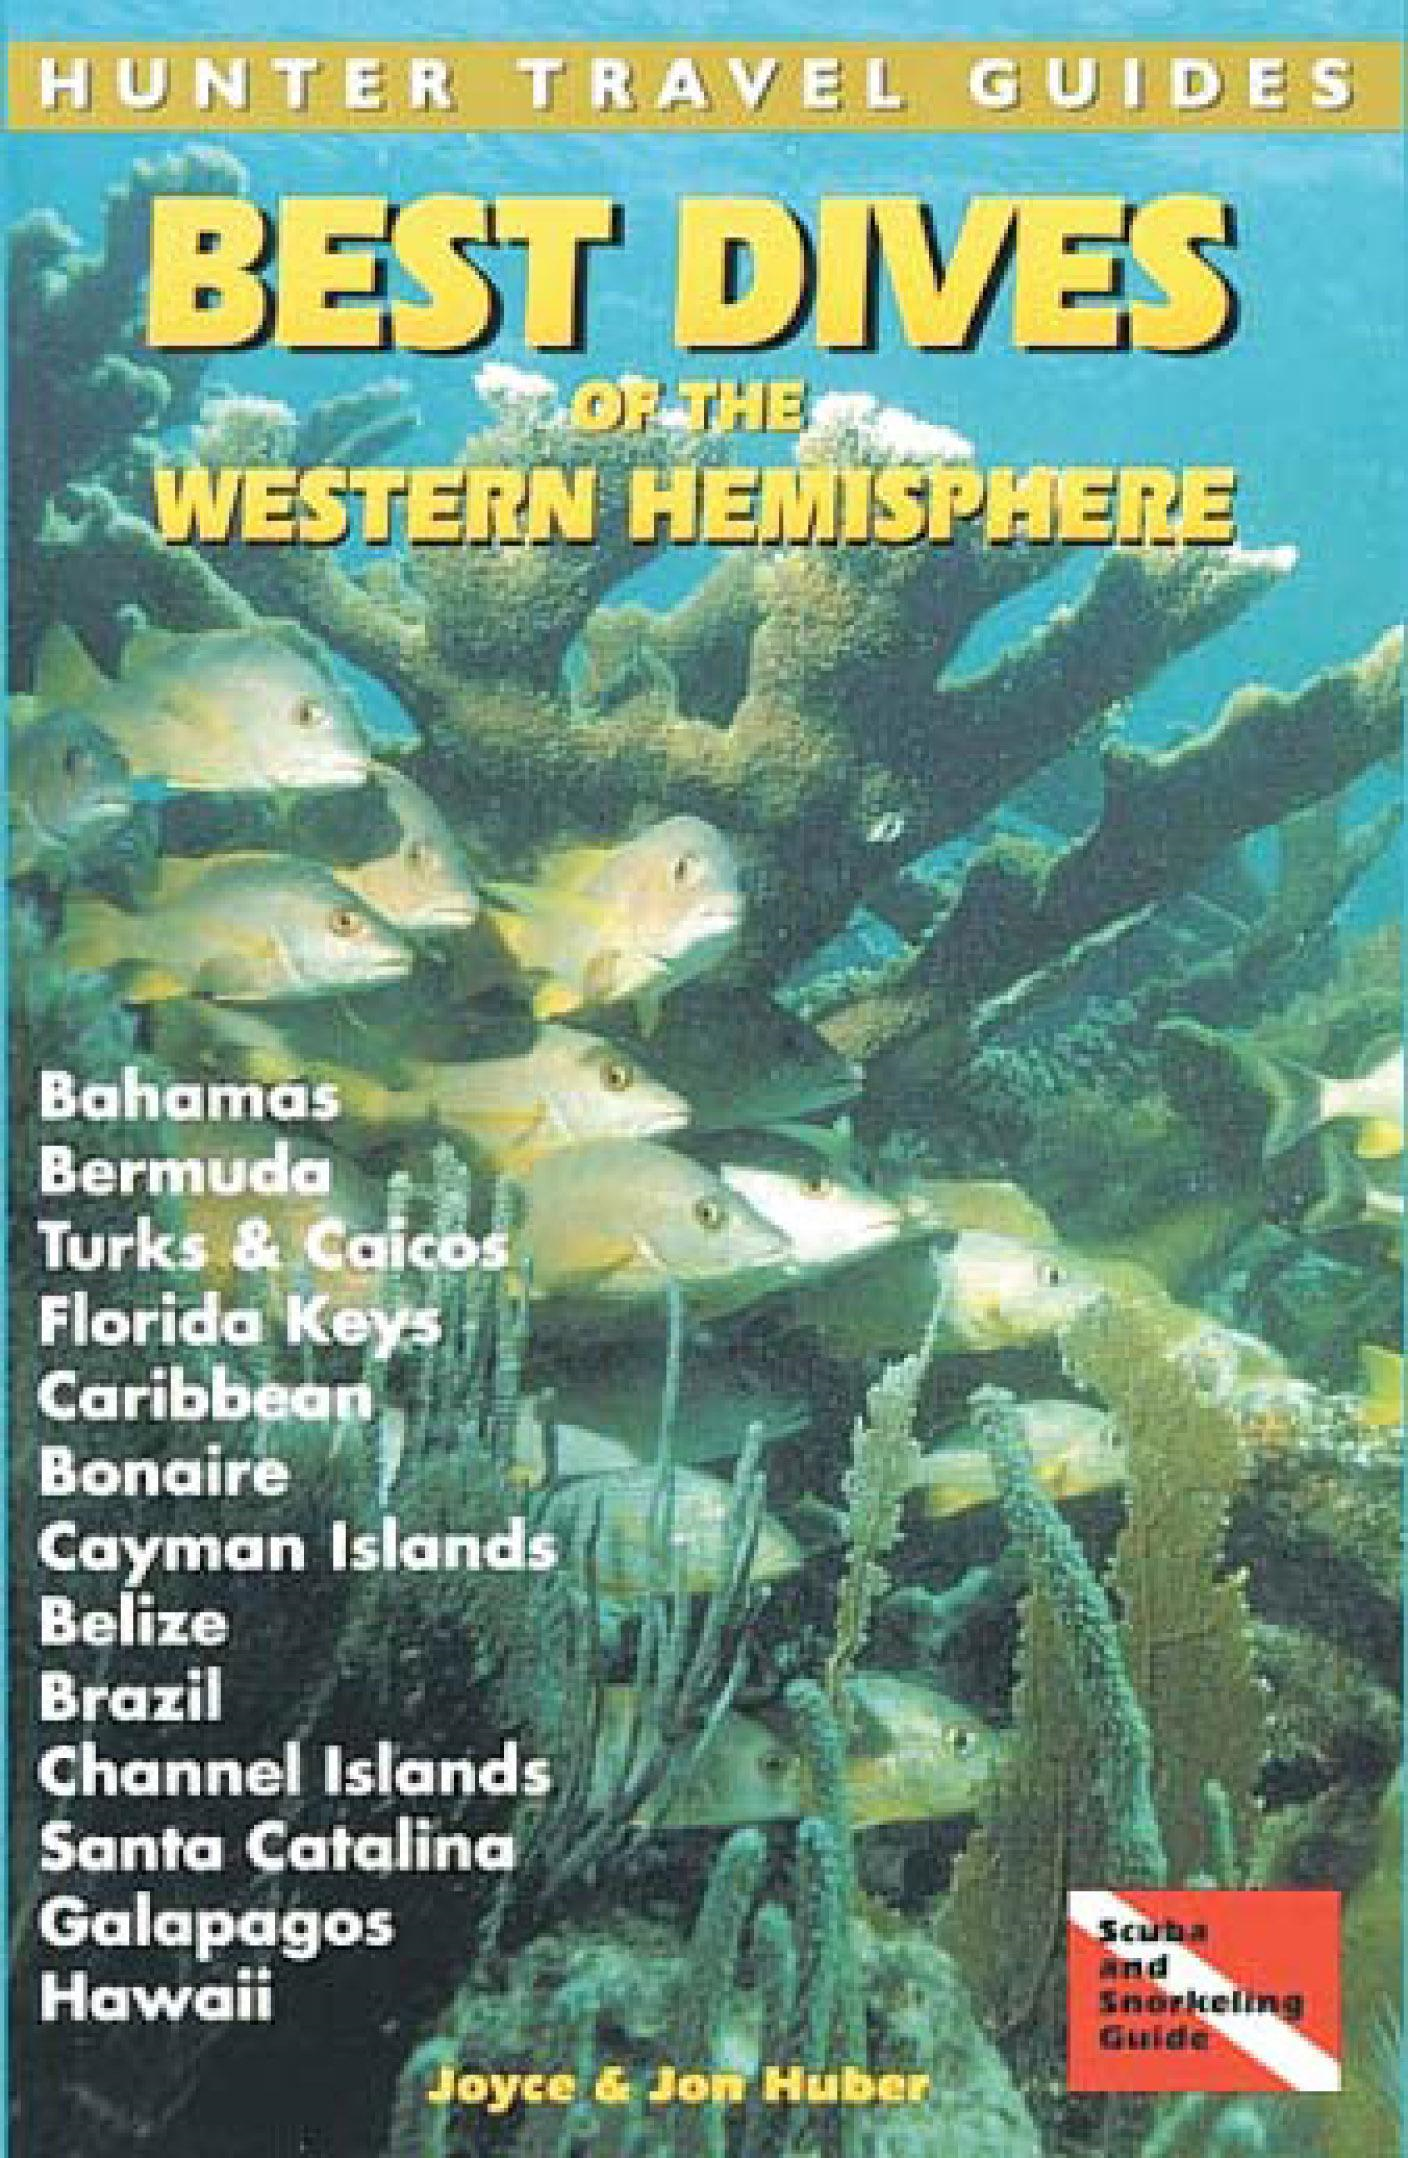 Best Dives of the Western Hemisphere